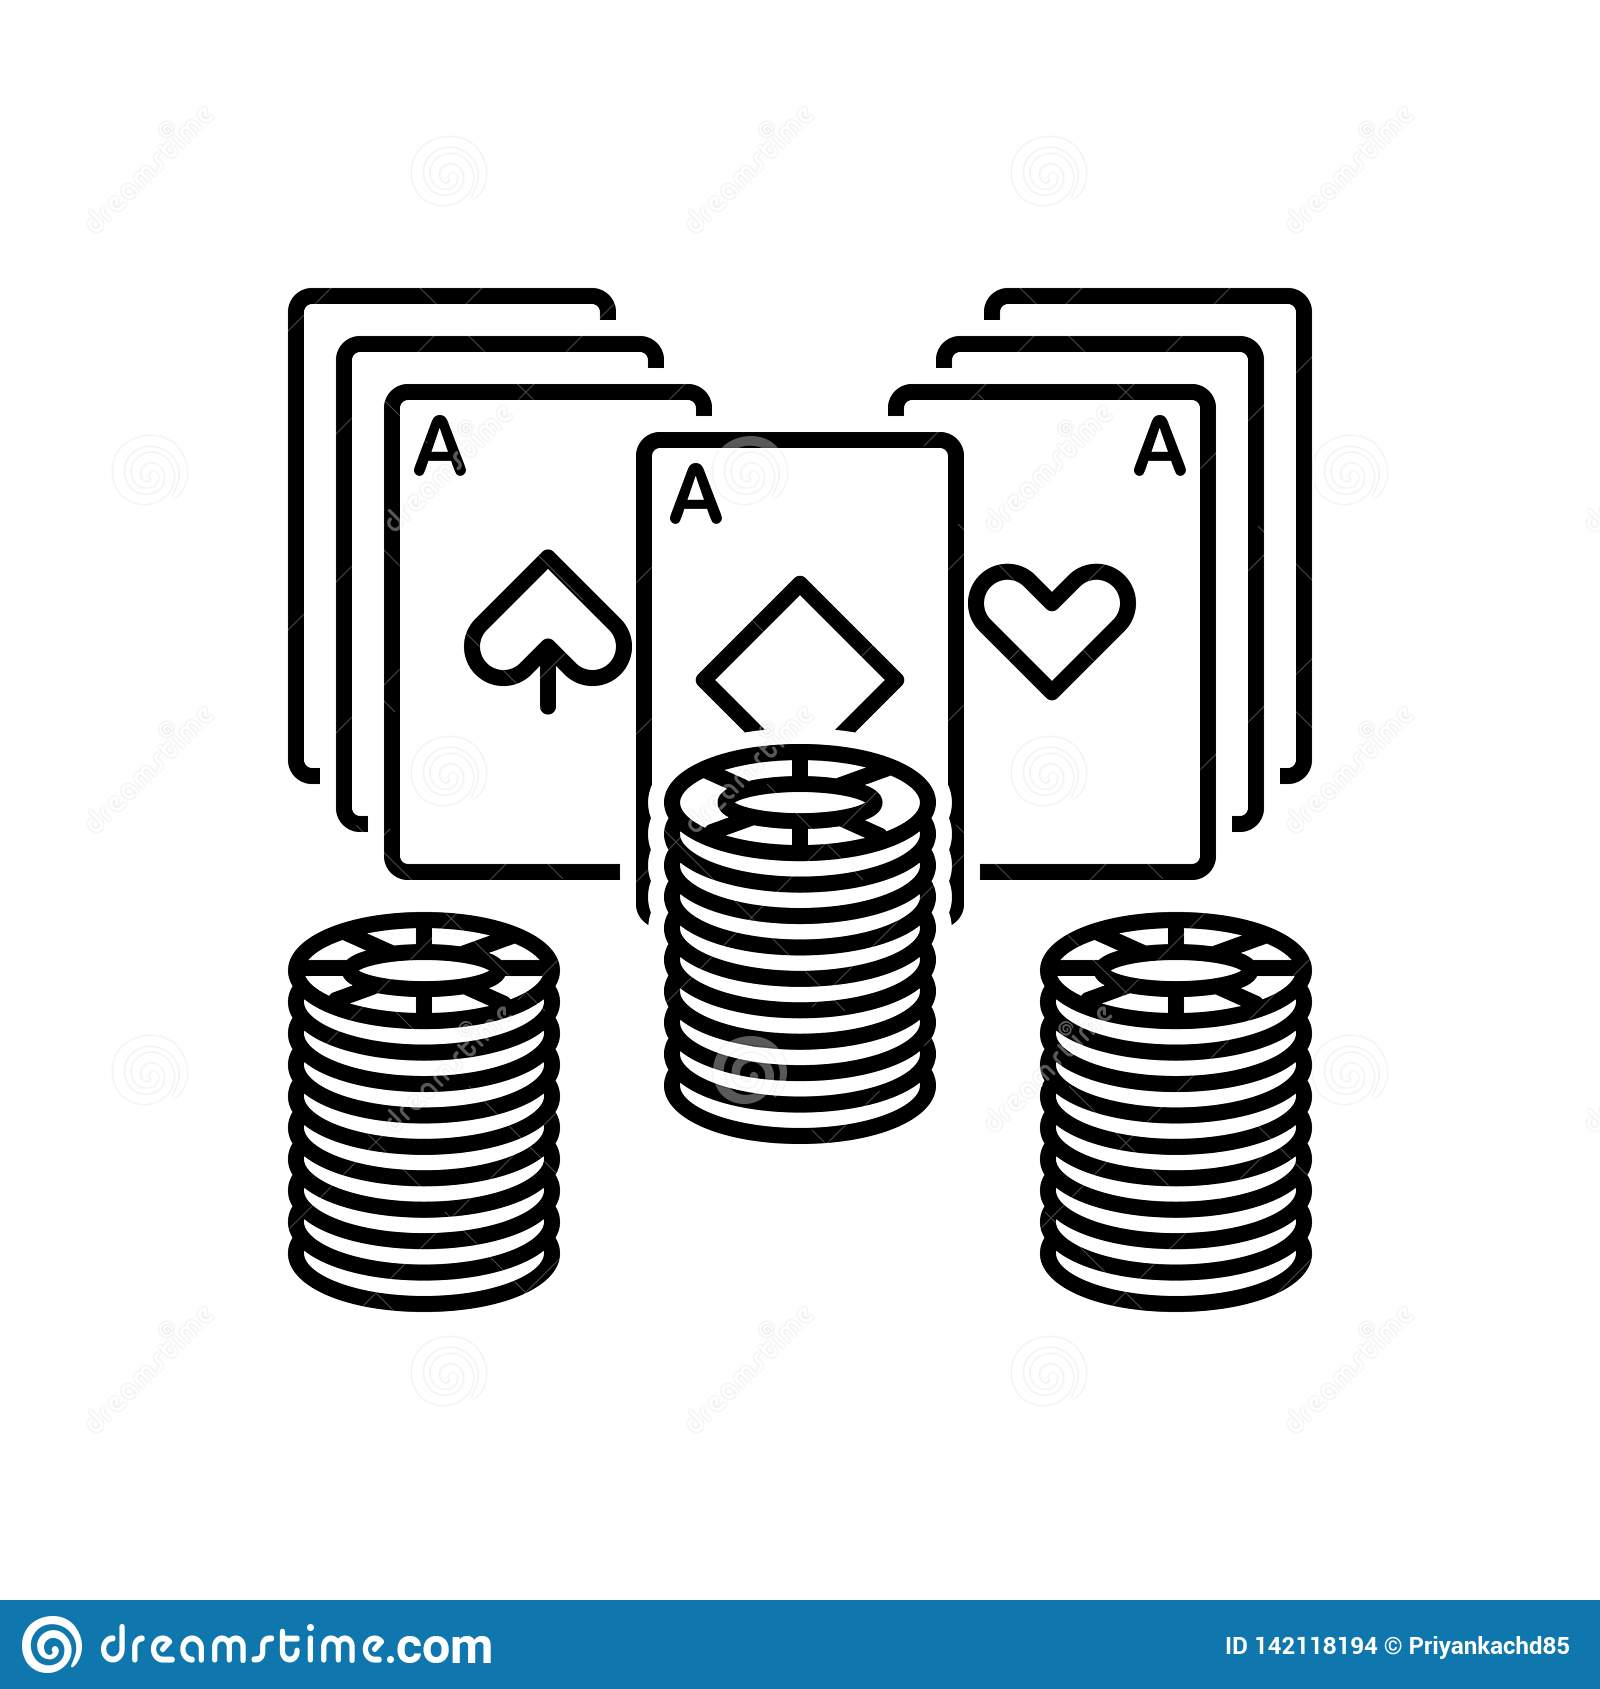 Black line icon for Poker, chip and gamble